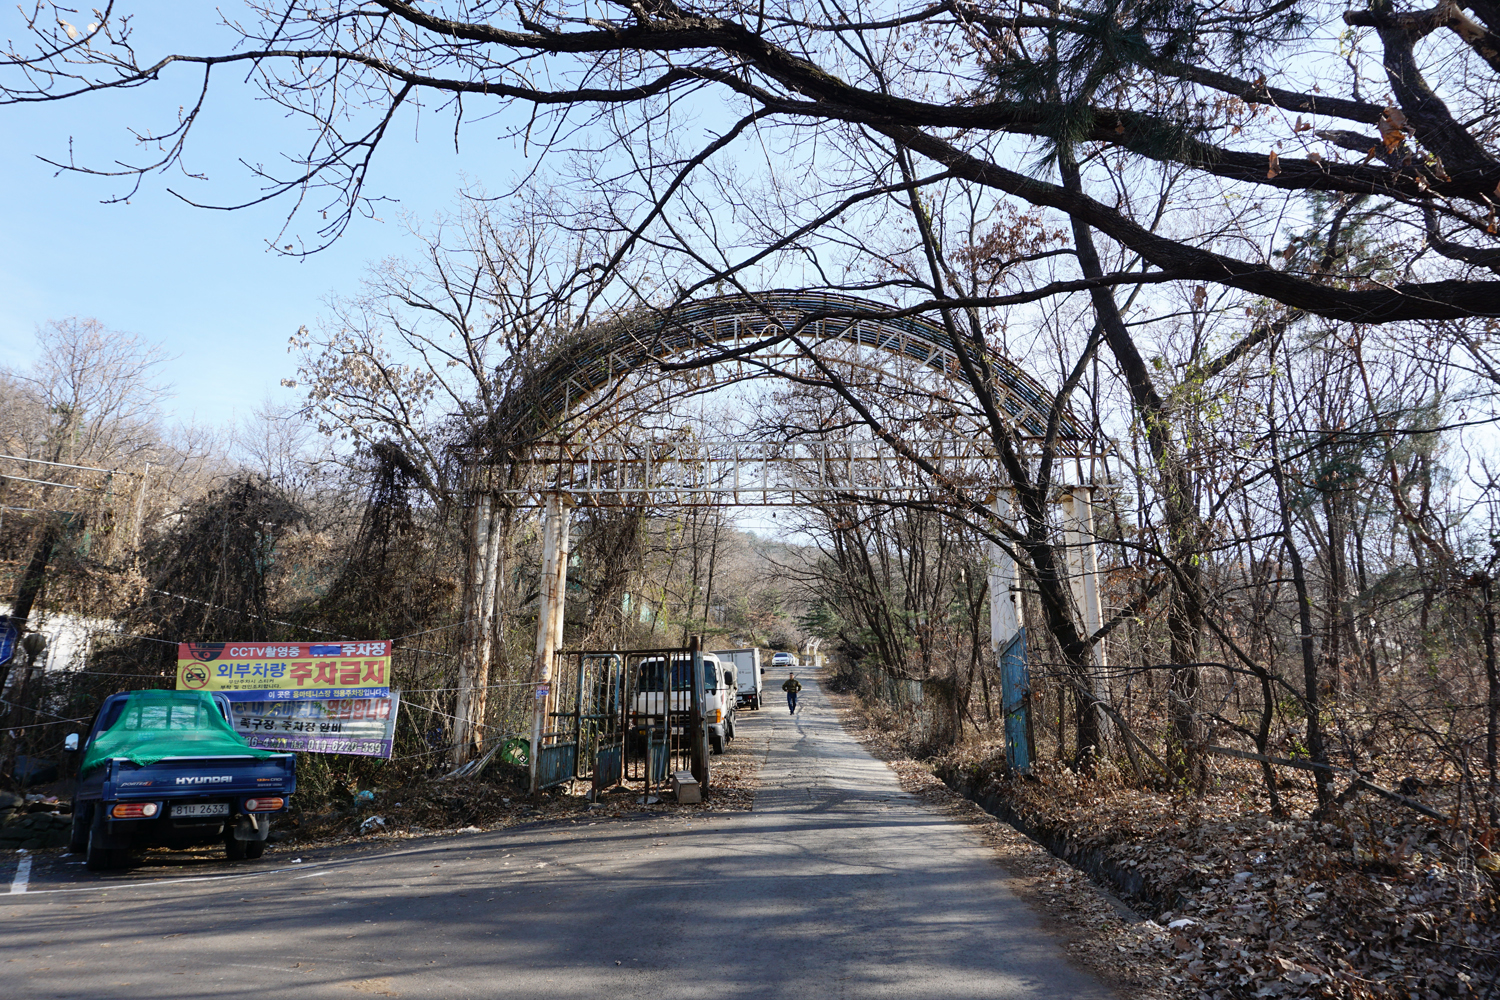 Yongma_Land_Abandoned_Amusement_Park_Seoul_Korea_1